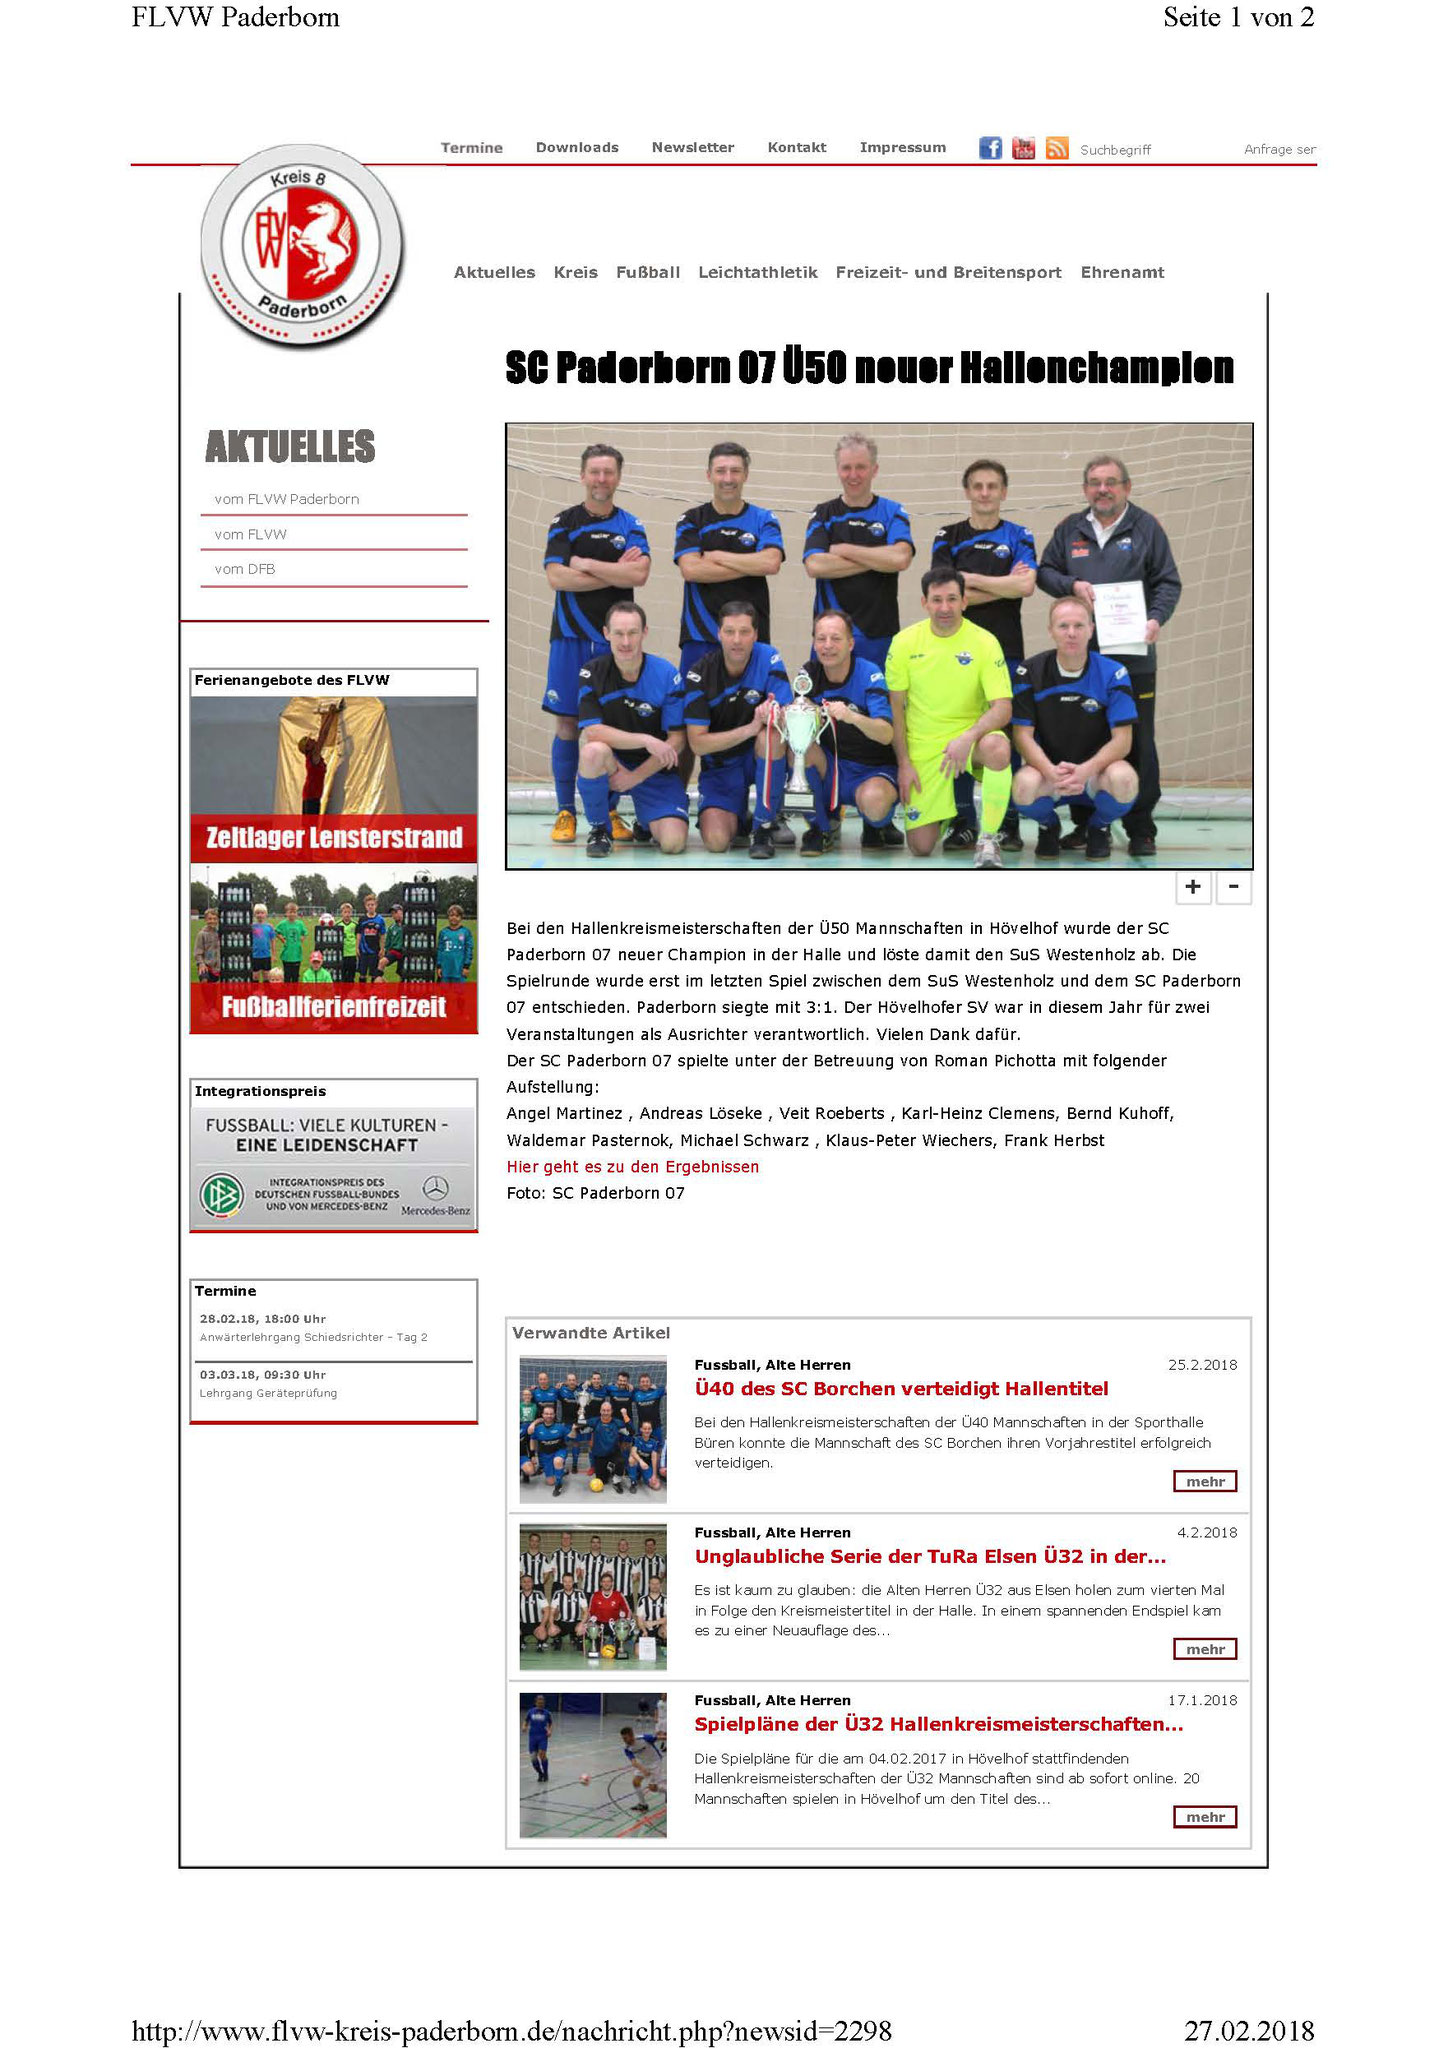 Quelle: Website FLVW Paderborn